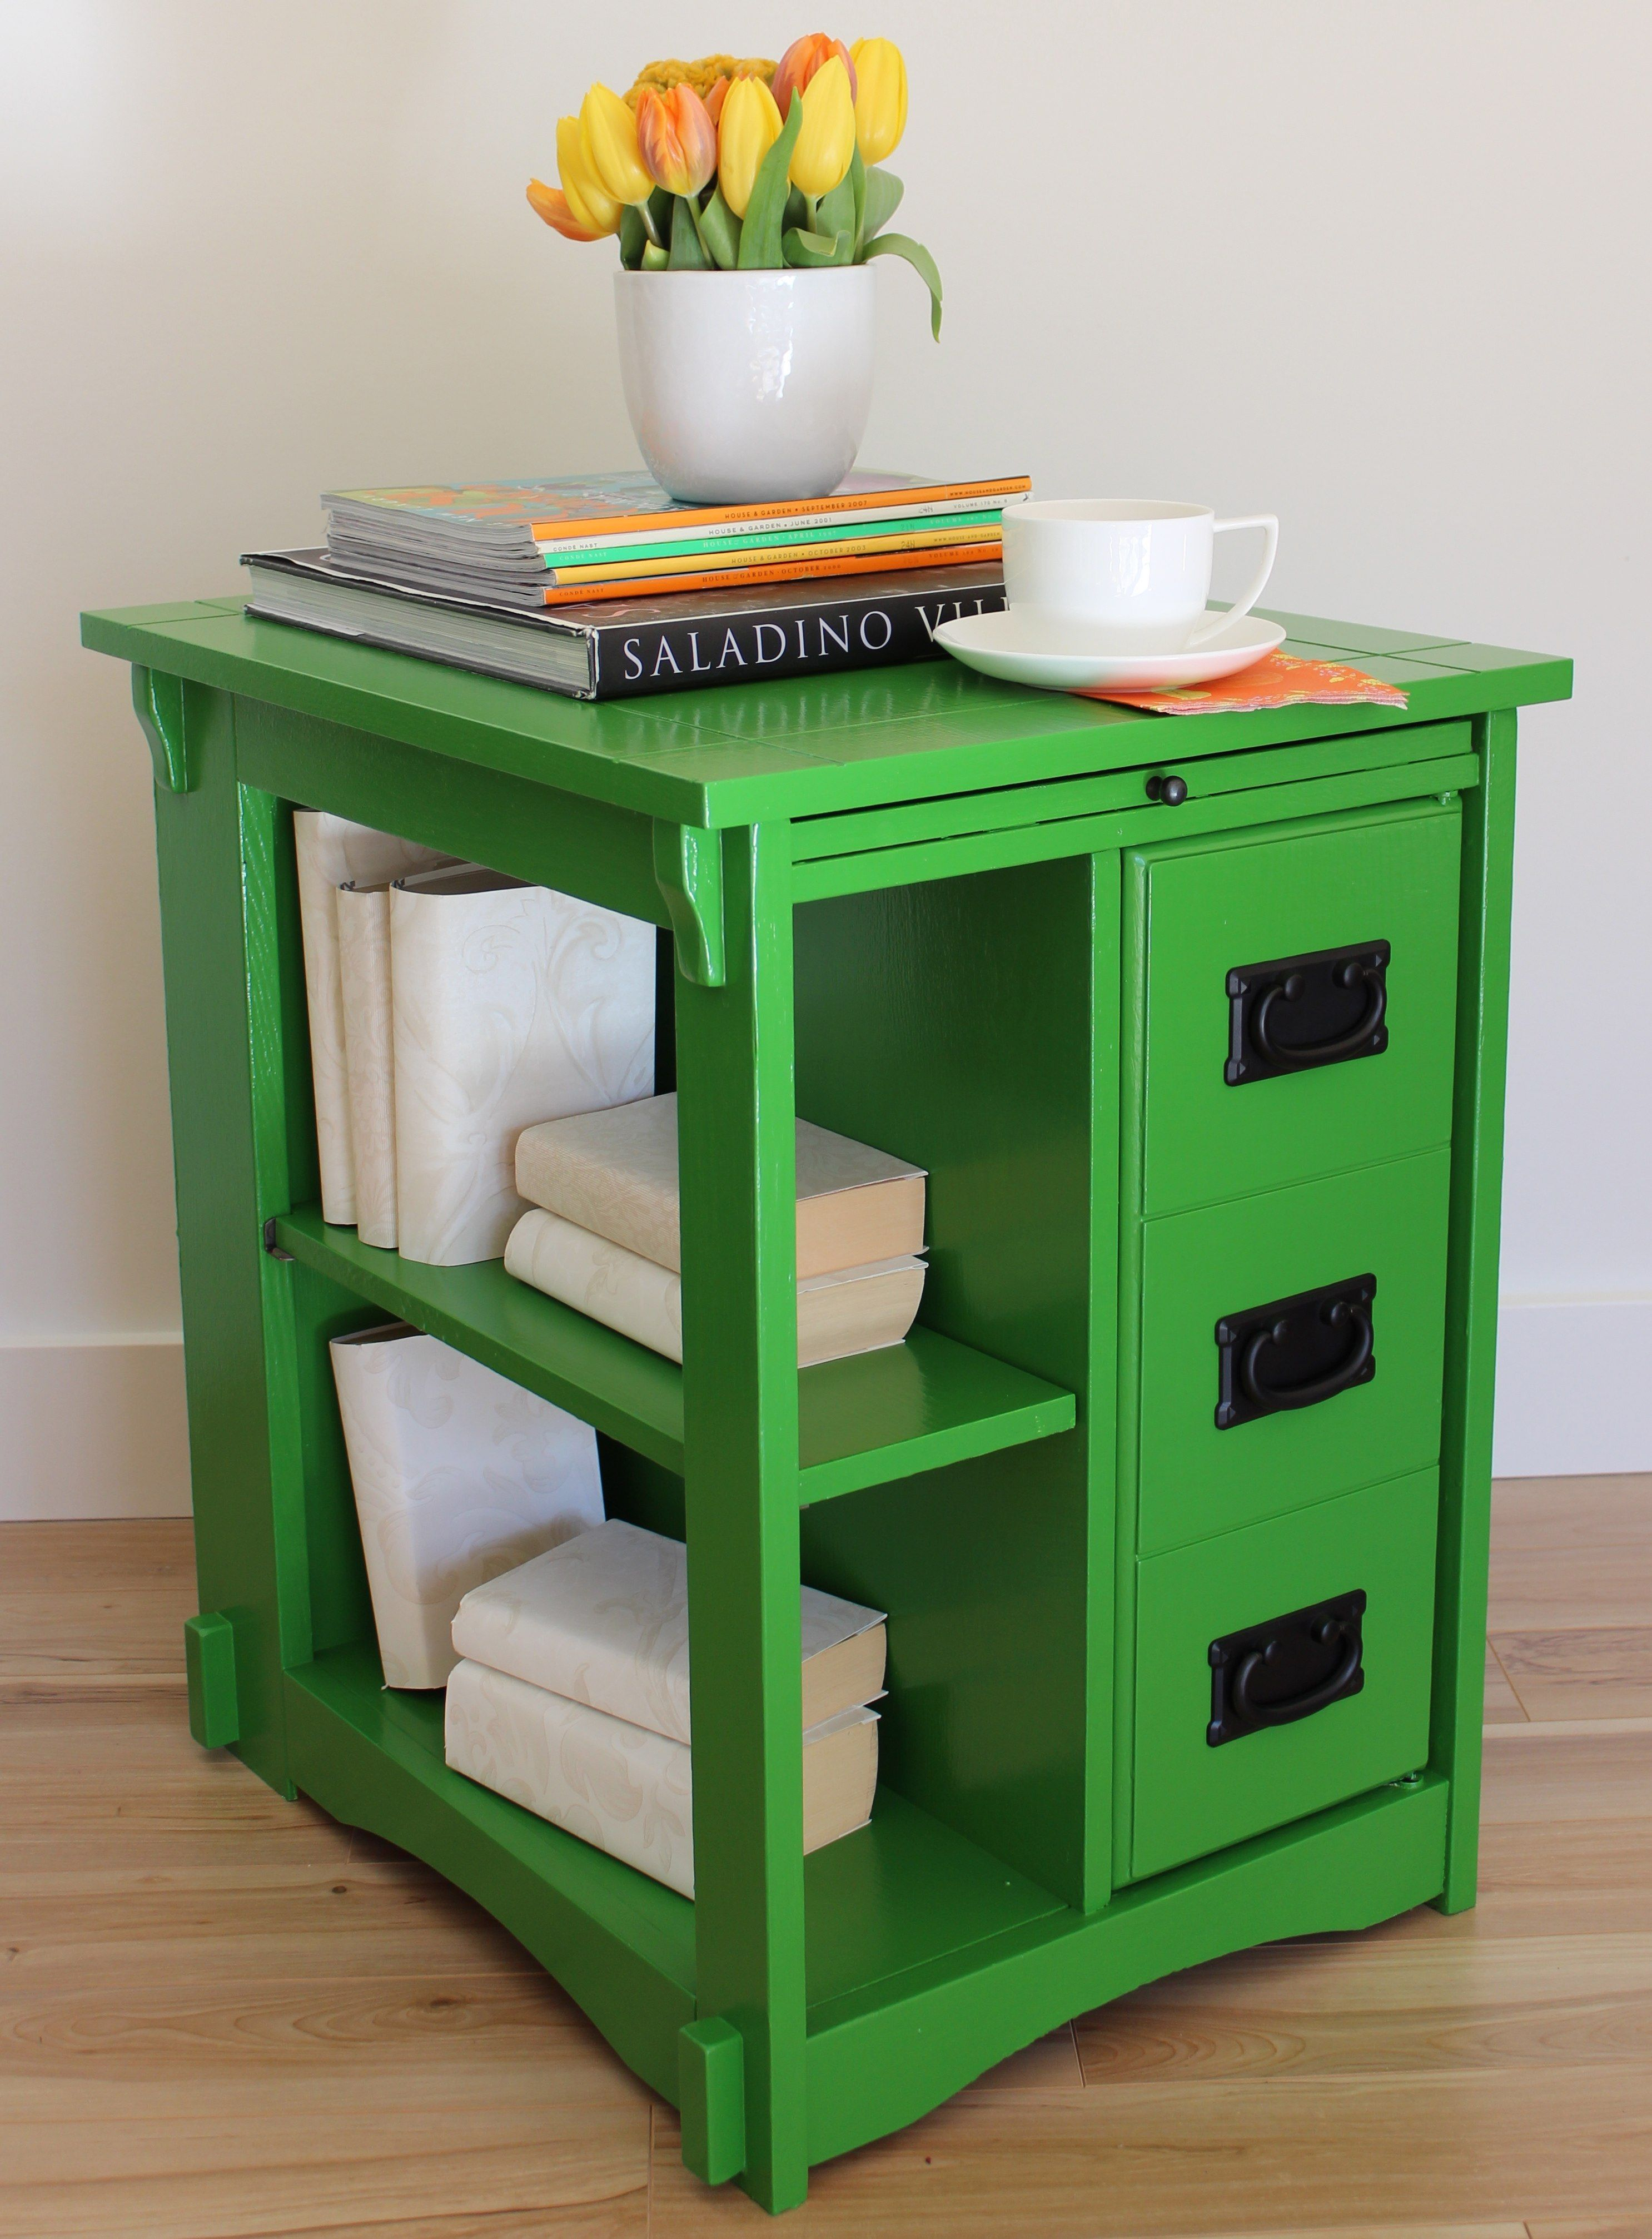 end tables designs green ked and painted she said with regard vote for fabulous kate spade inspired table diy regarding target hafley accent house decoration things dining room